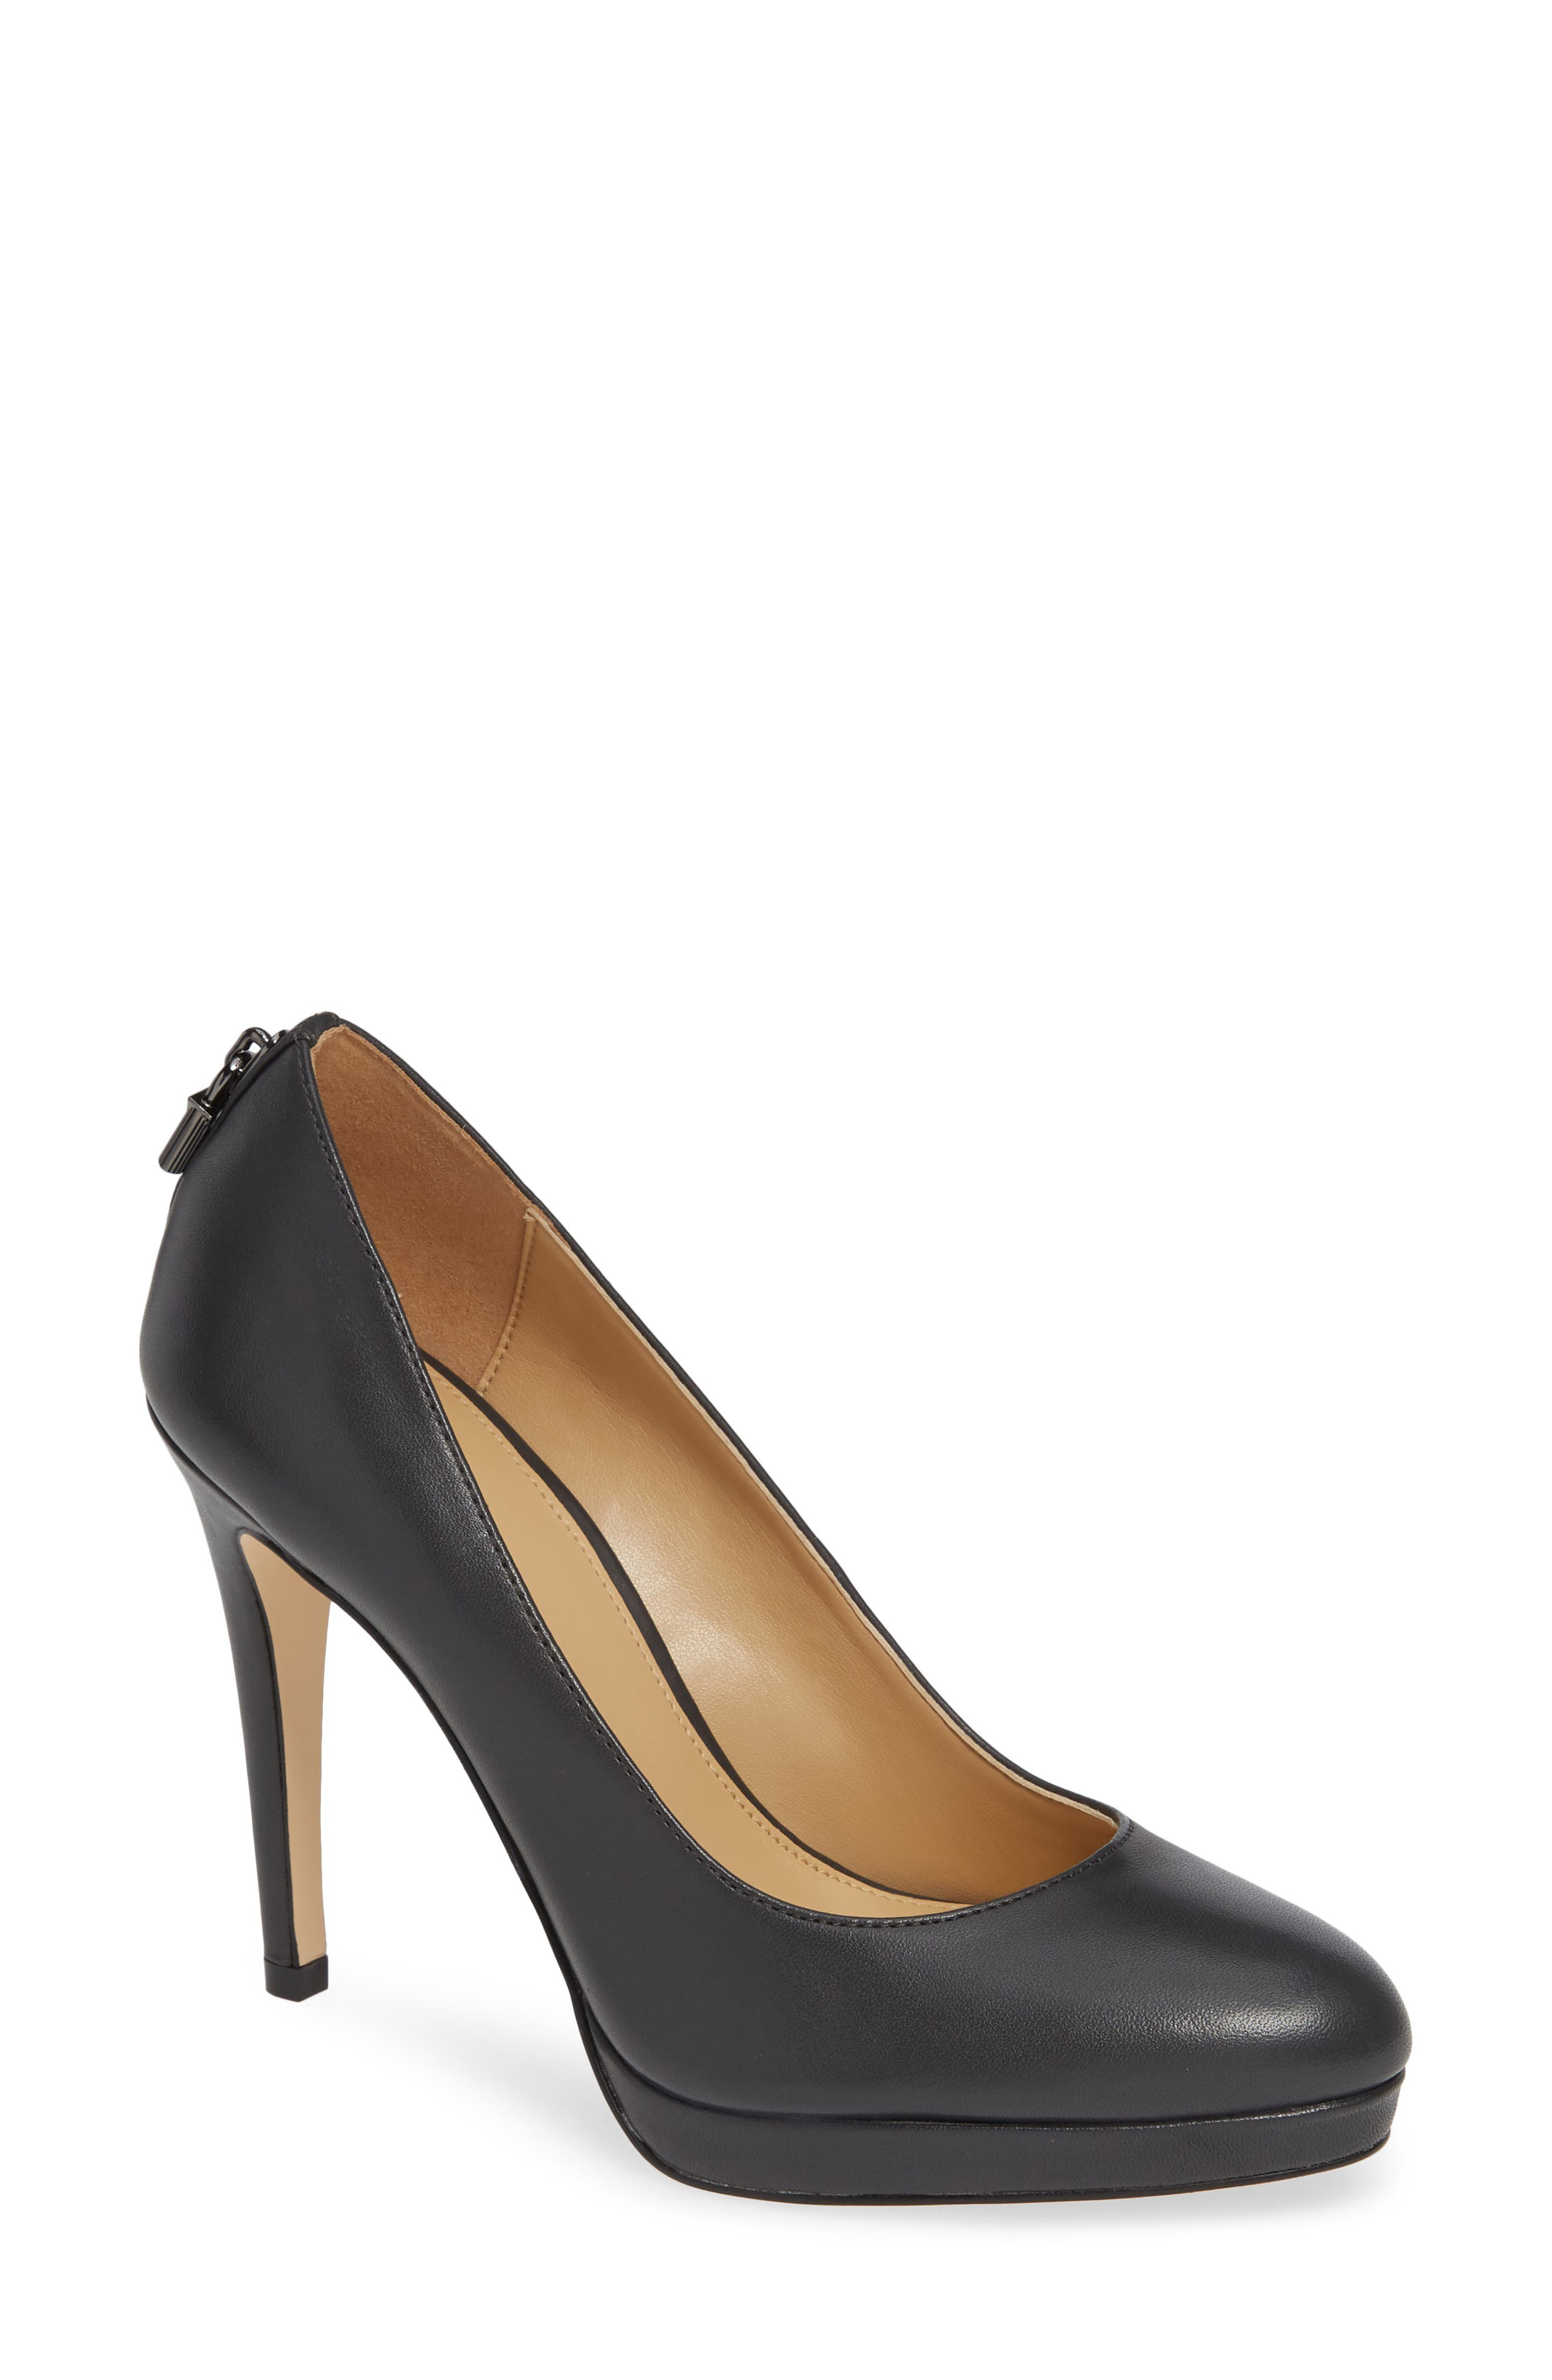 Antoinette Leather Platform Pumps With Padlock in Charcoal Leather